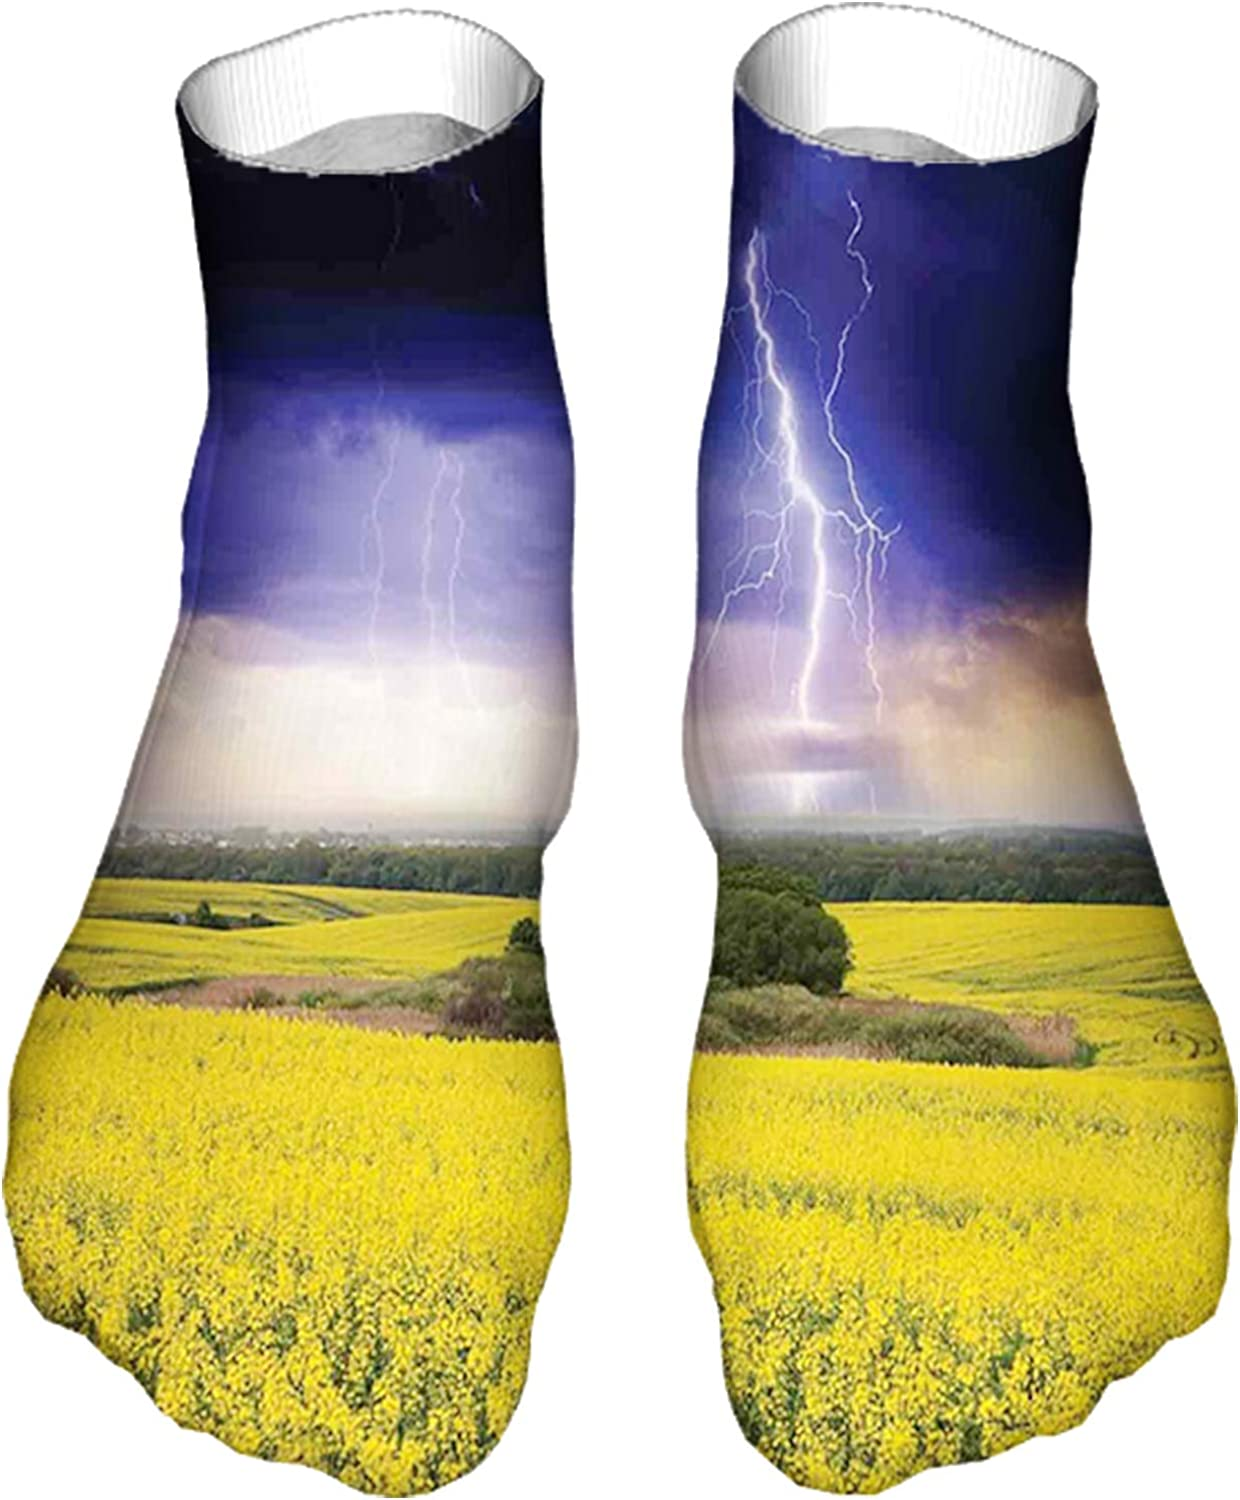 Women's Colorful Patterned Unisex Low Cut/No Show Socks,Majestic Summer Storm Just About to Start Blowing